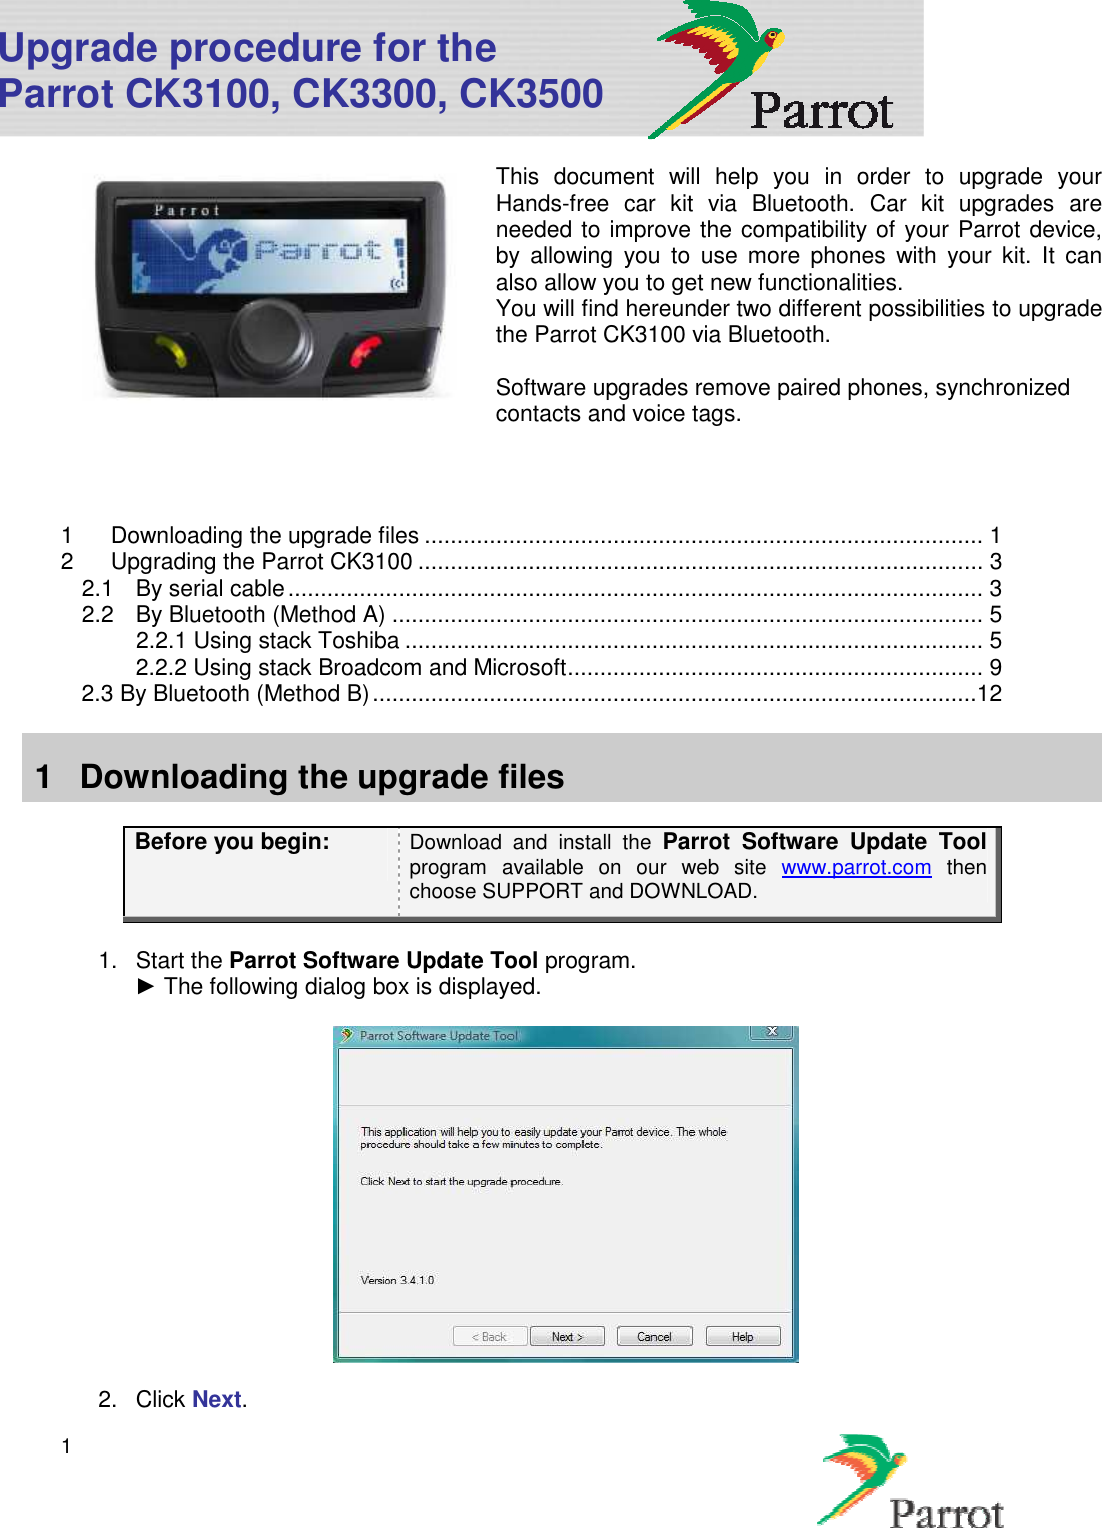 Parrot Ck3100 Ing Guide Wiring Diagram And Schematics Free Engine Image For User Car Stereo System Users Manual Vista Upgrade Procedure Eng